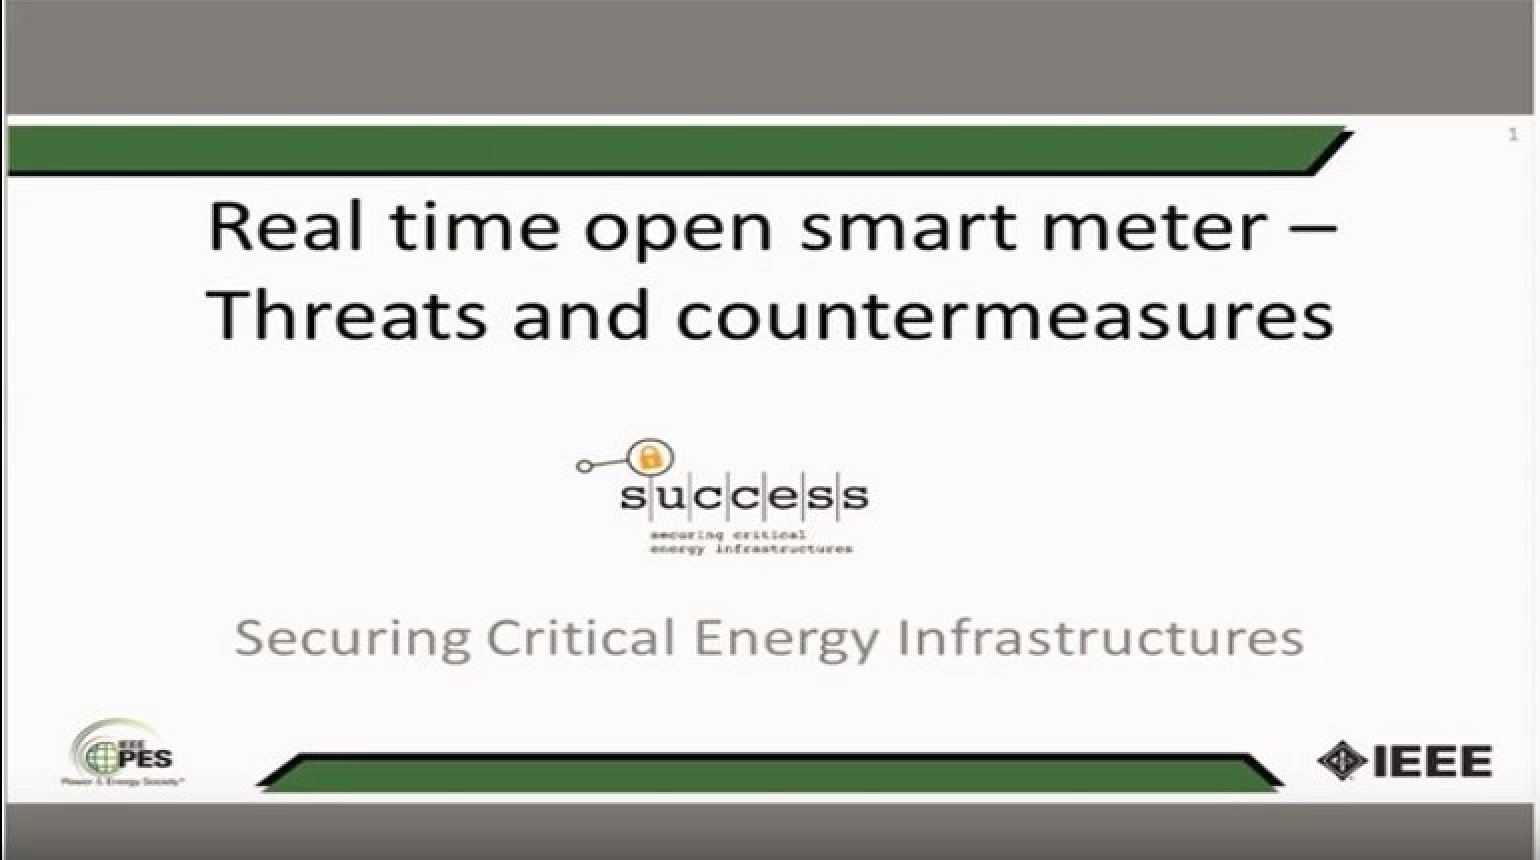 Real-time Open Smart Meter: Threats and Countermeasures